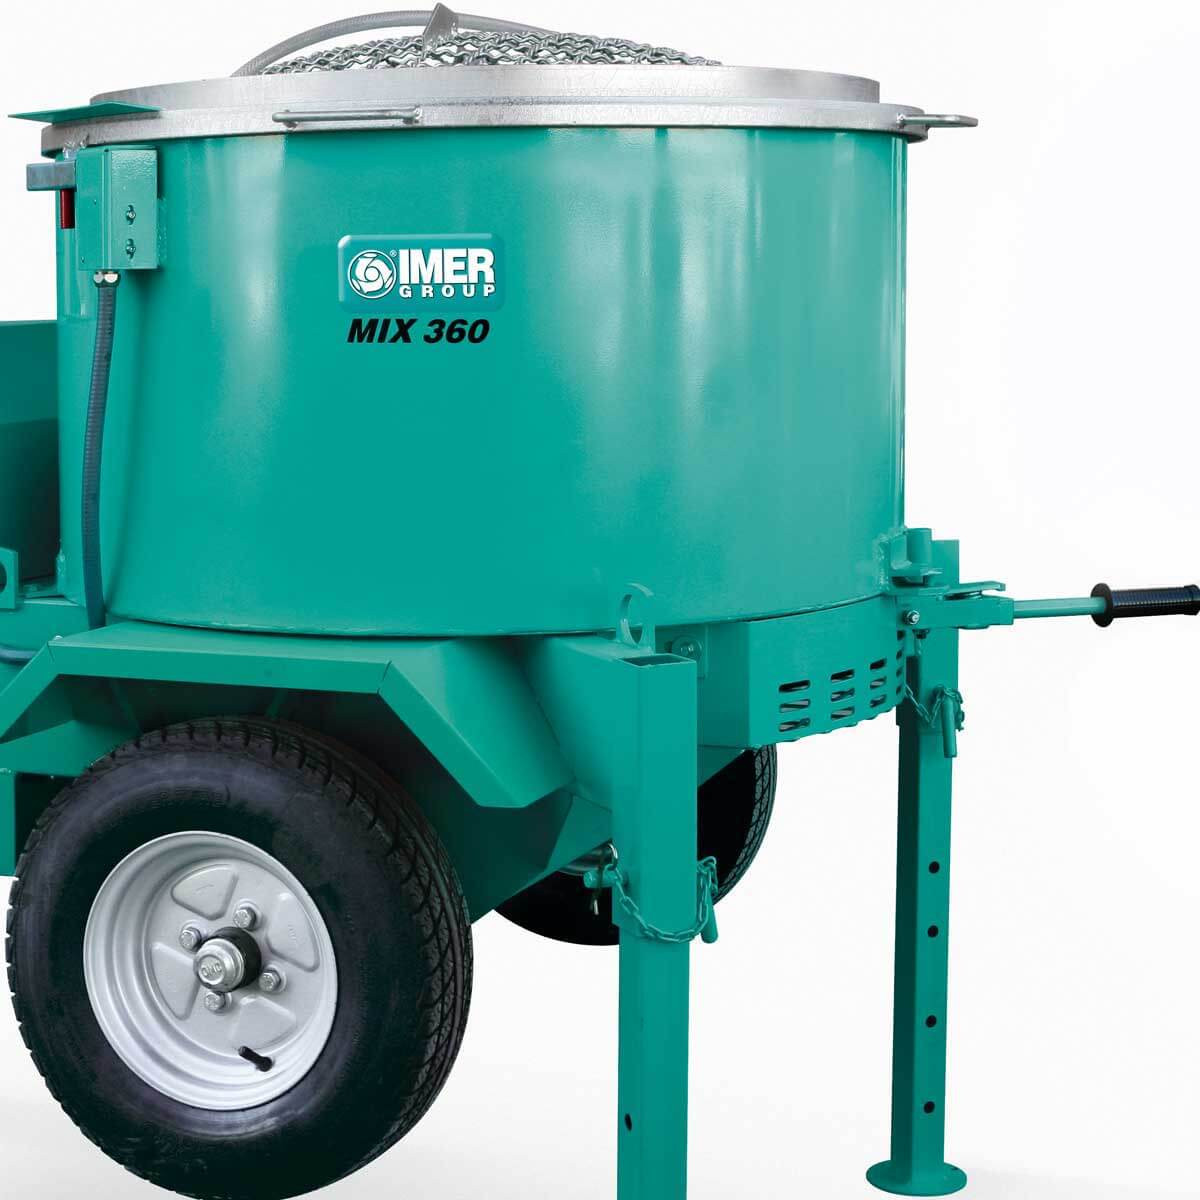 Imer Mortarman 360 Mixer discharge